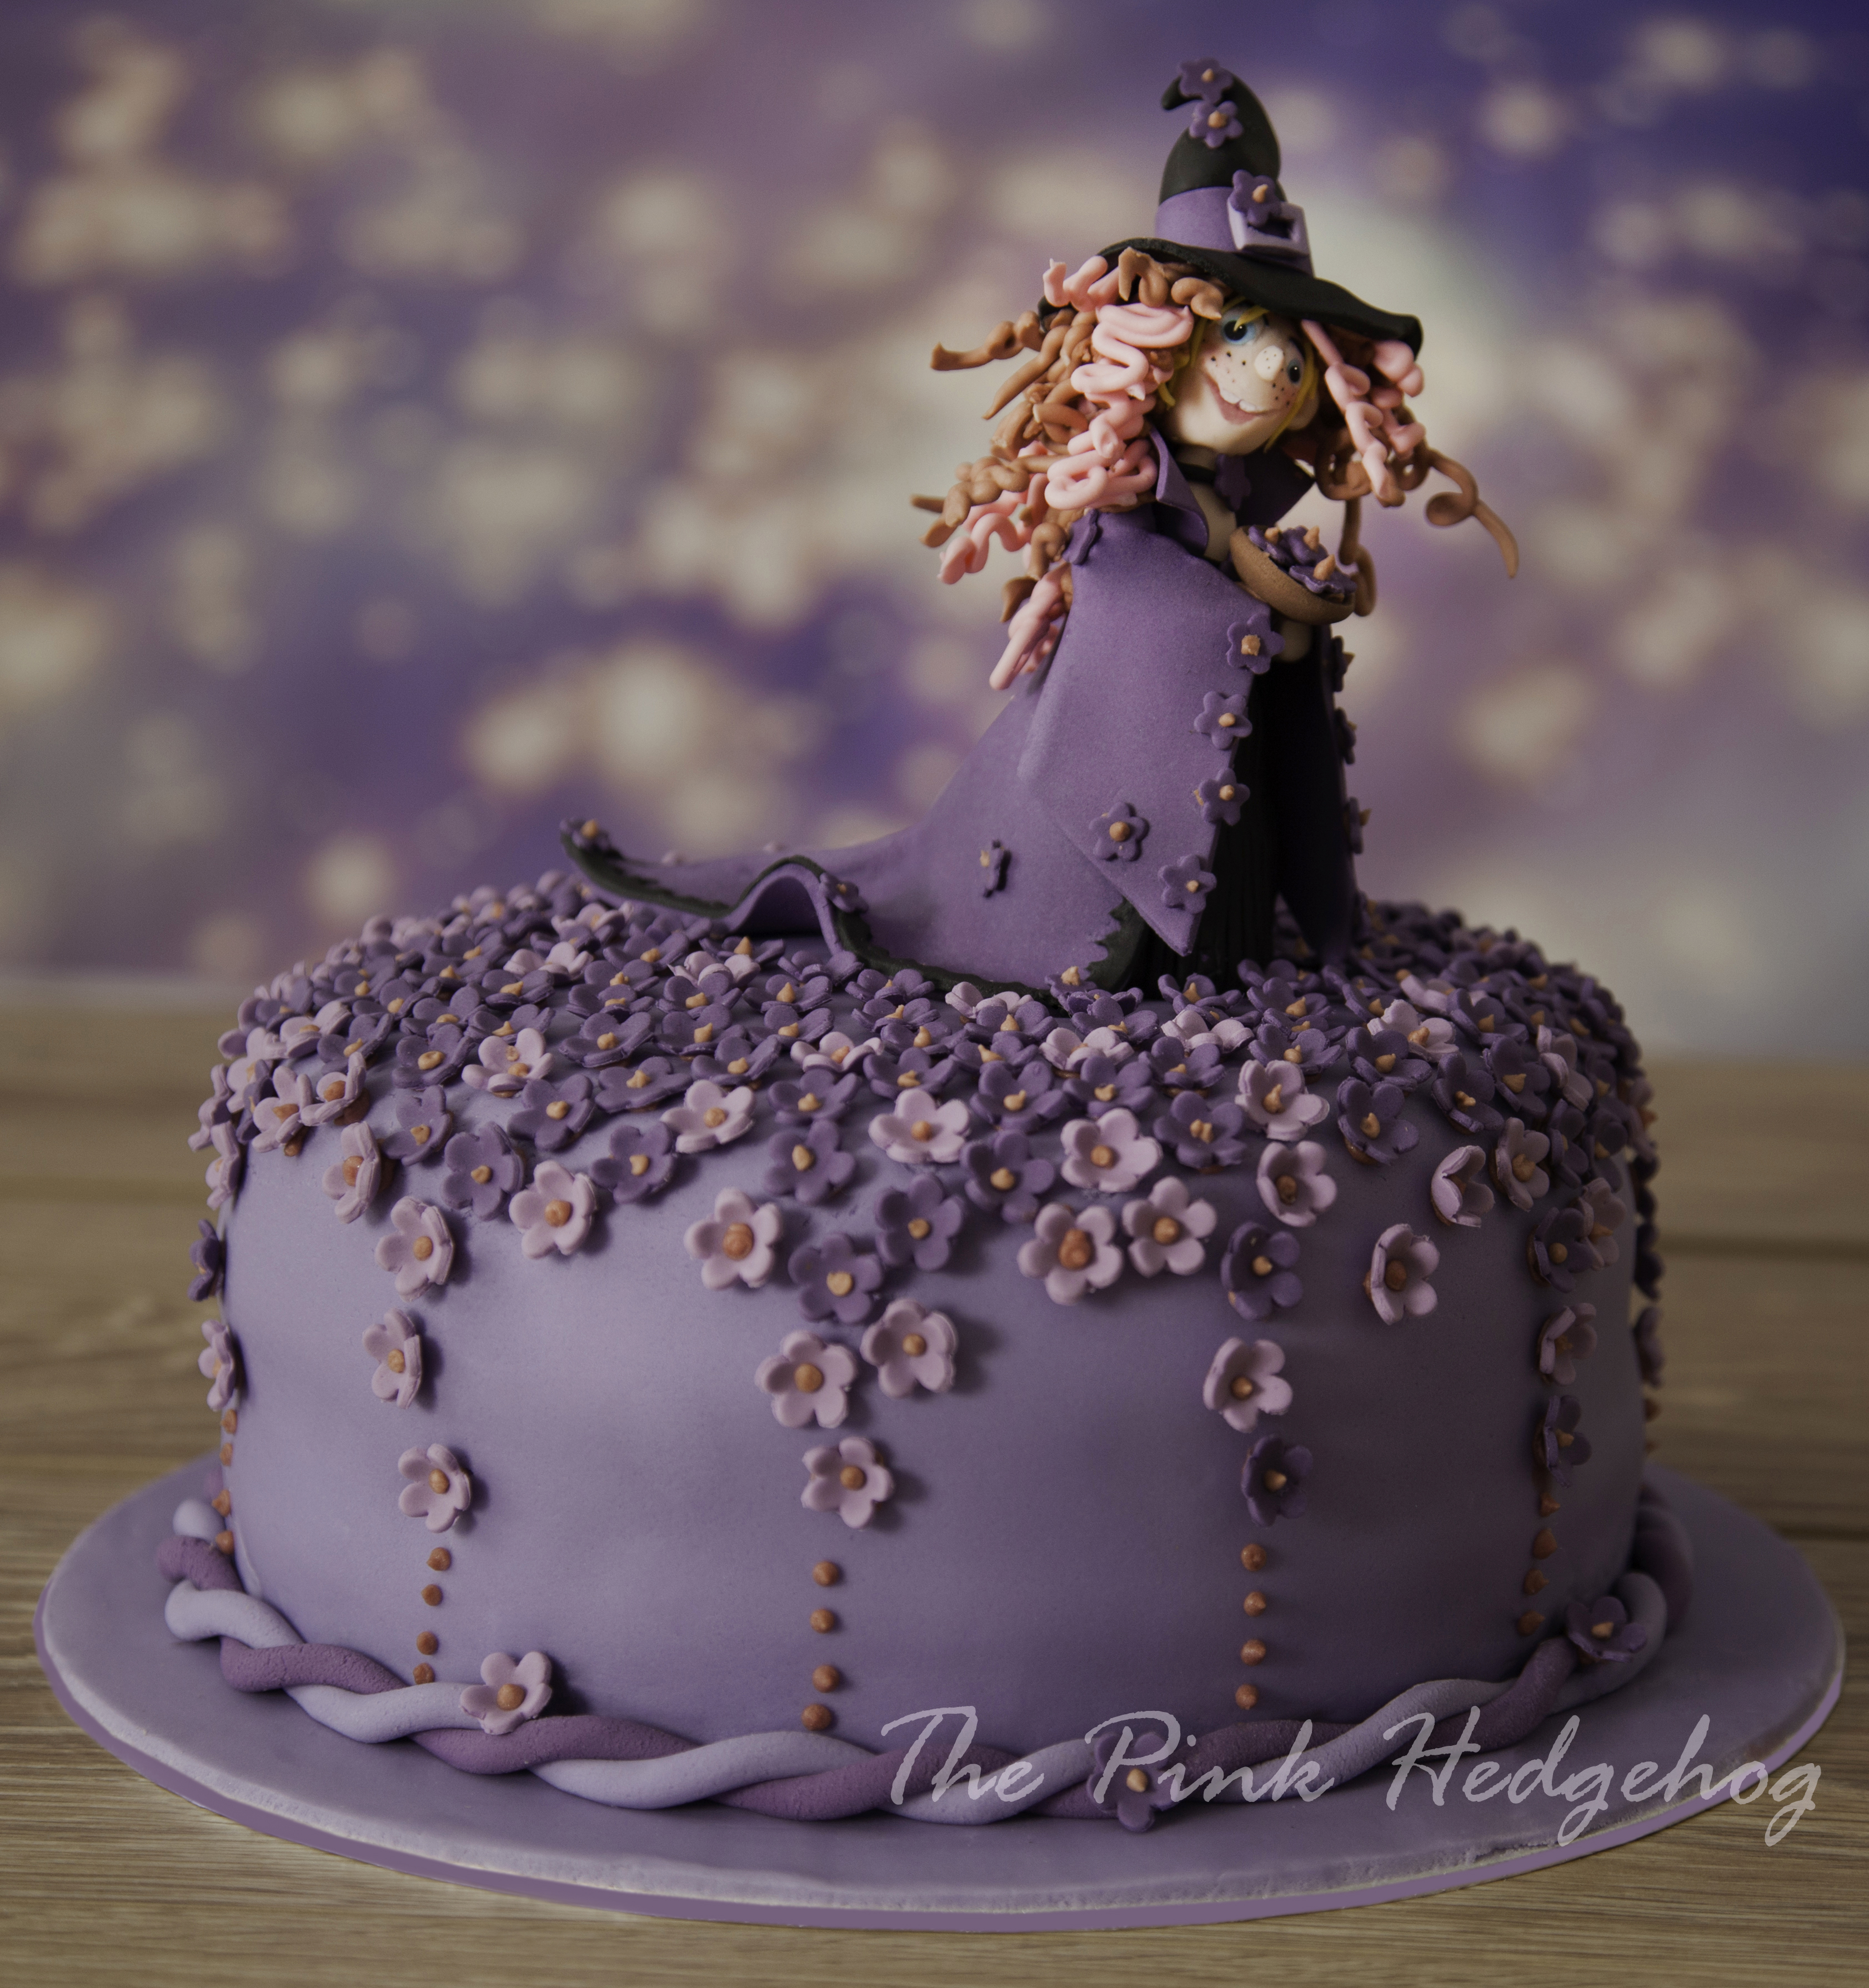 NancyTheWitchCake